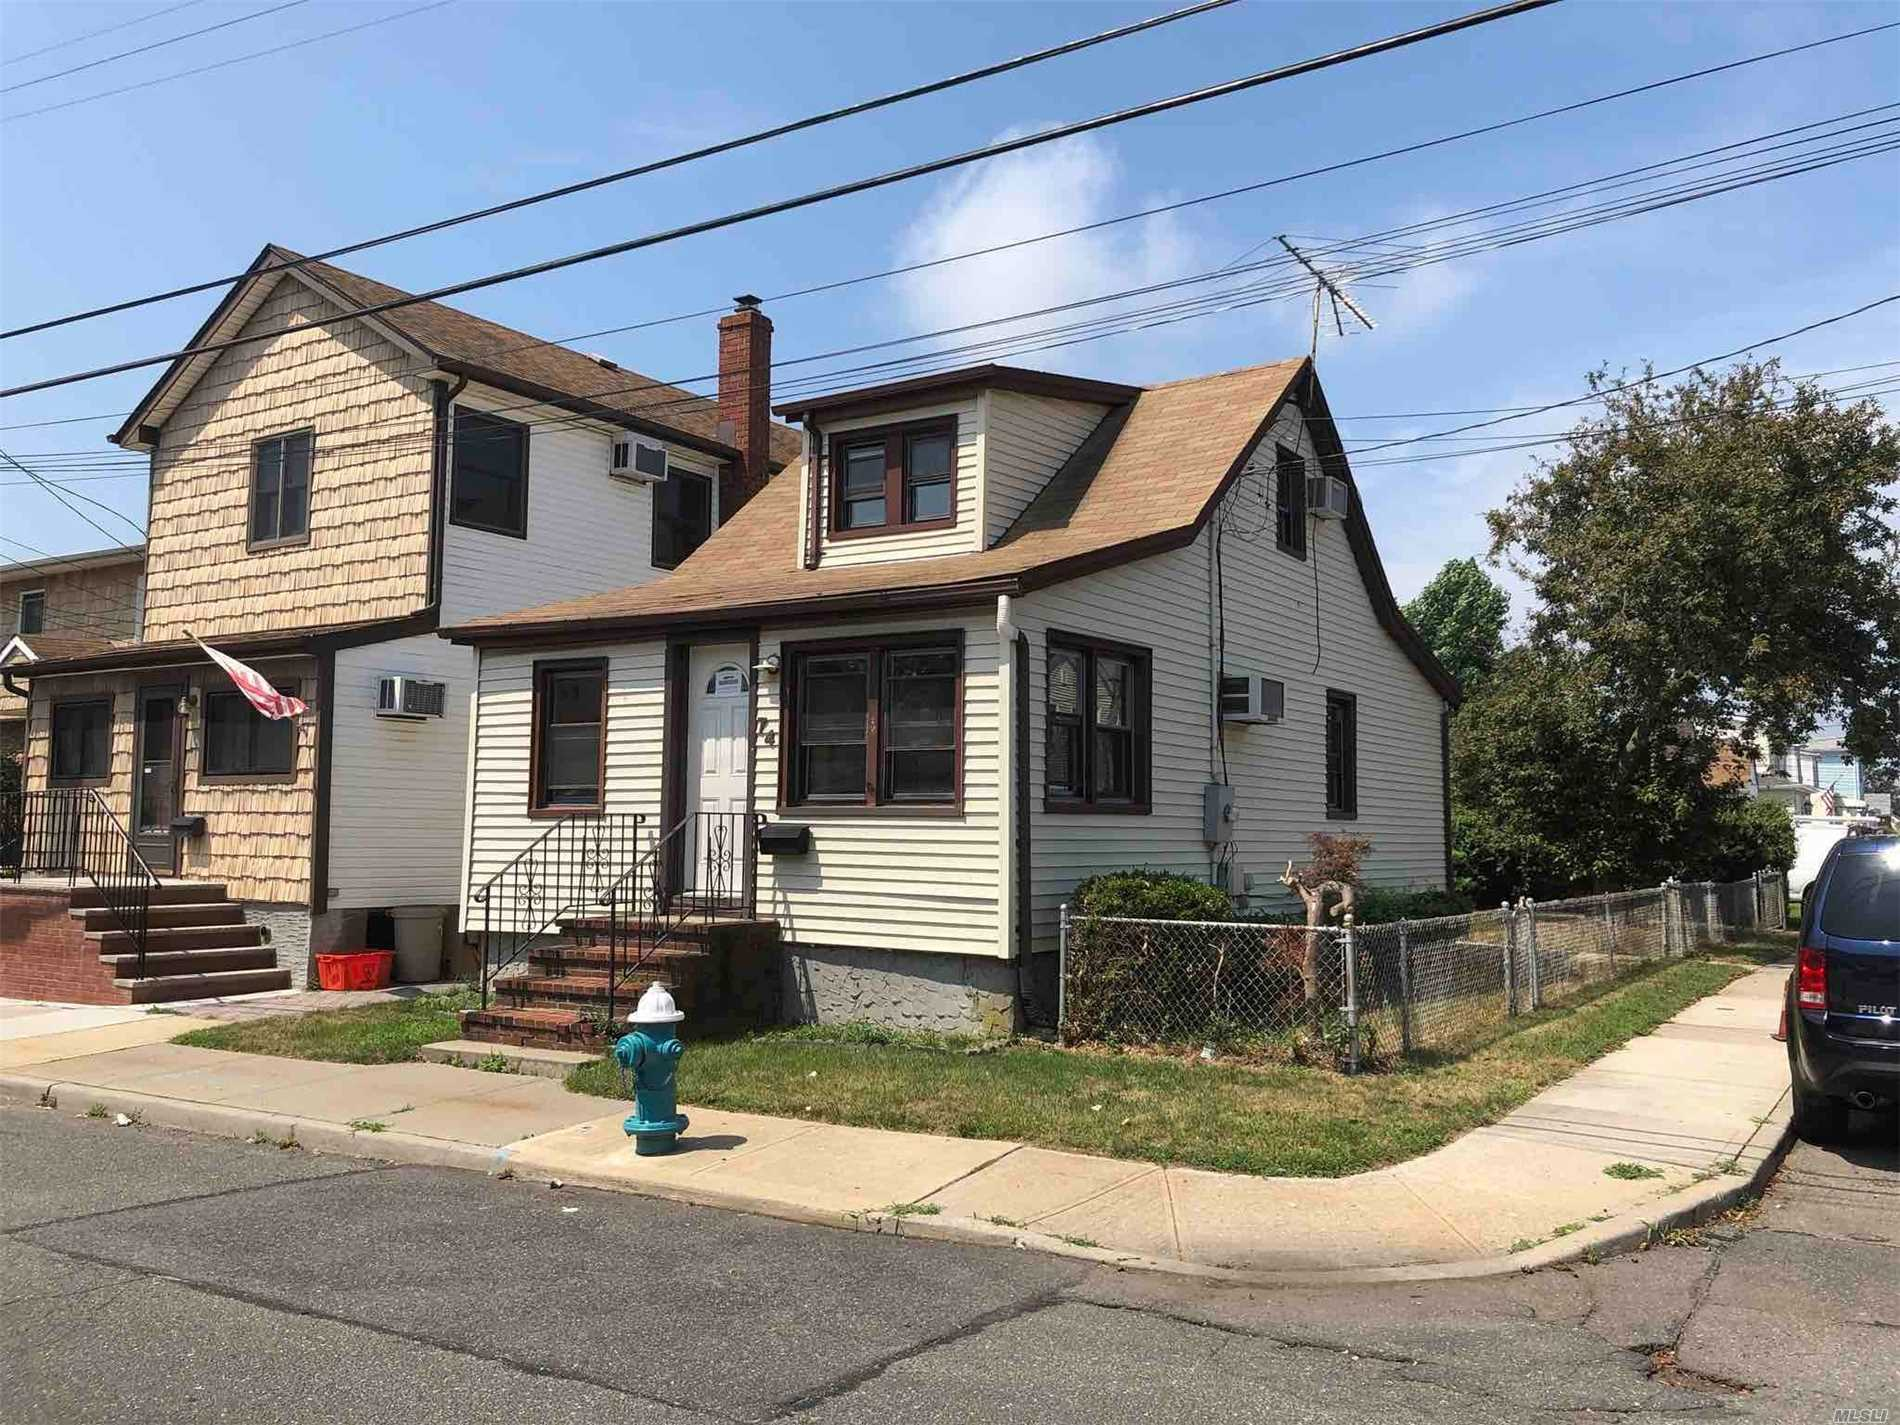 Cape Style Home. This Home Features 2 Bedrooms, 1 Full Bath. Centrally Located To All. Don't Miss This Opportunity!